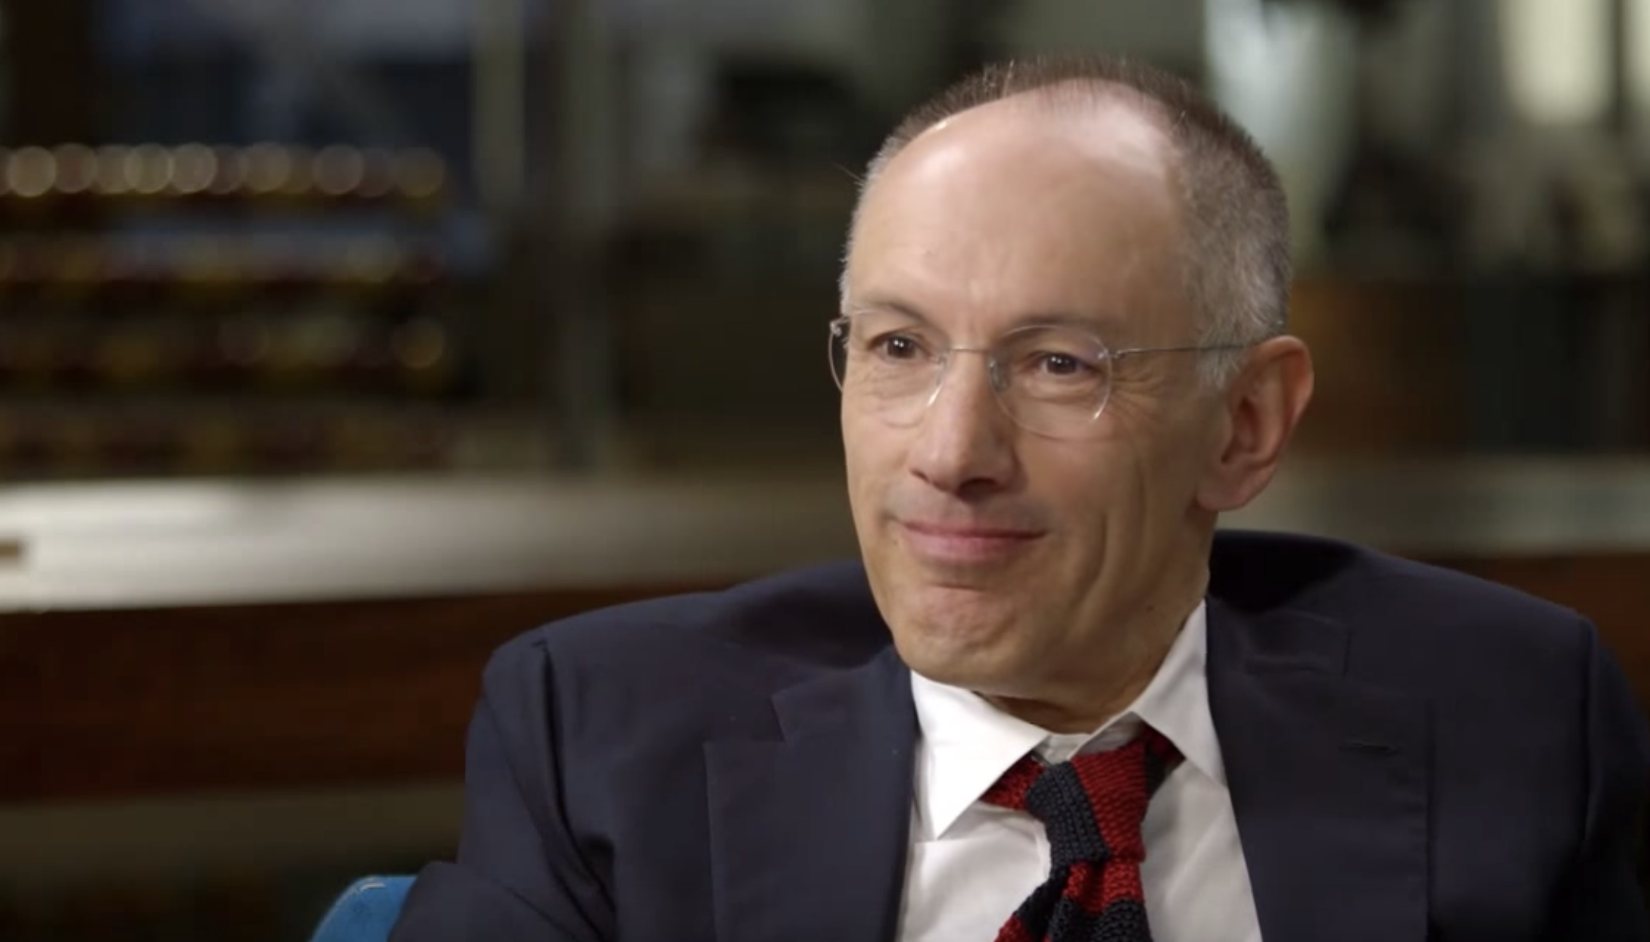 Sequoia Capital chairman Michael Moritz.